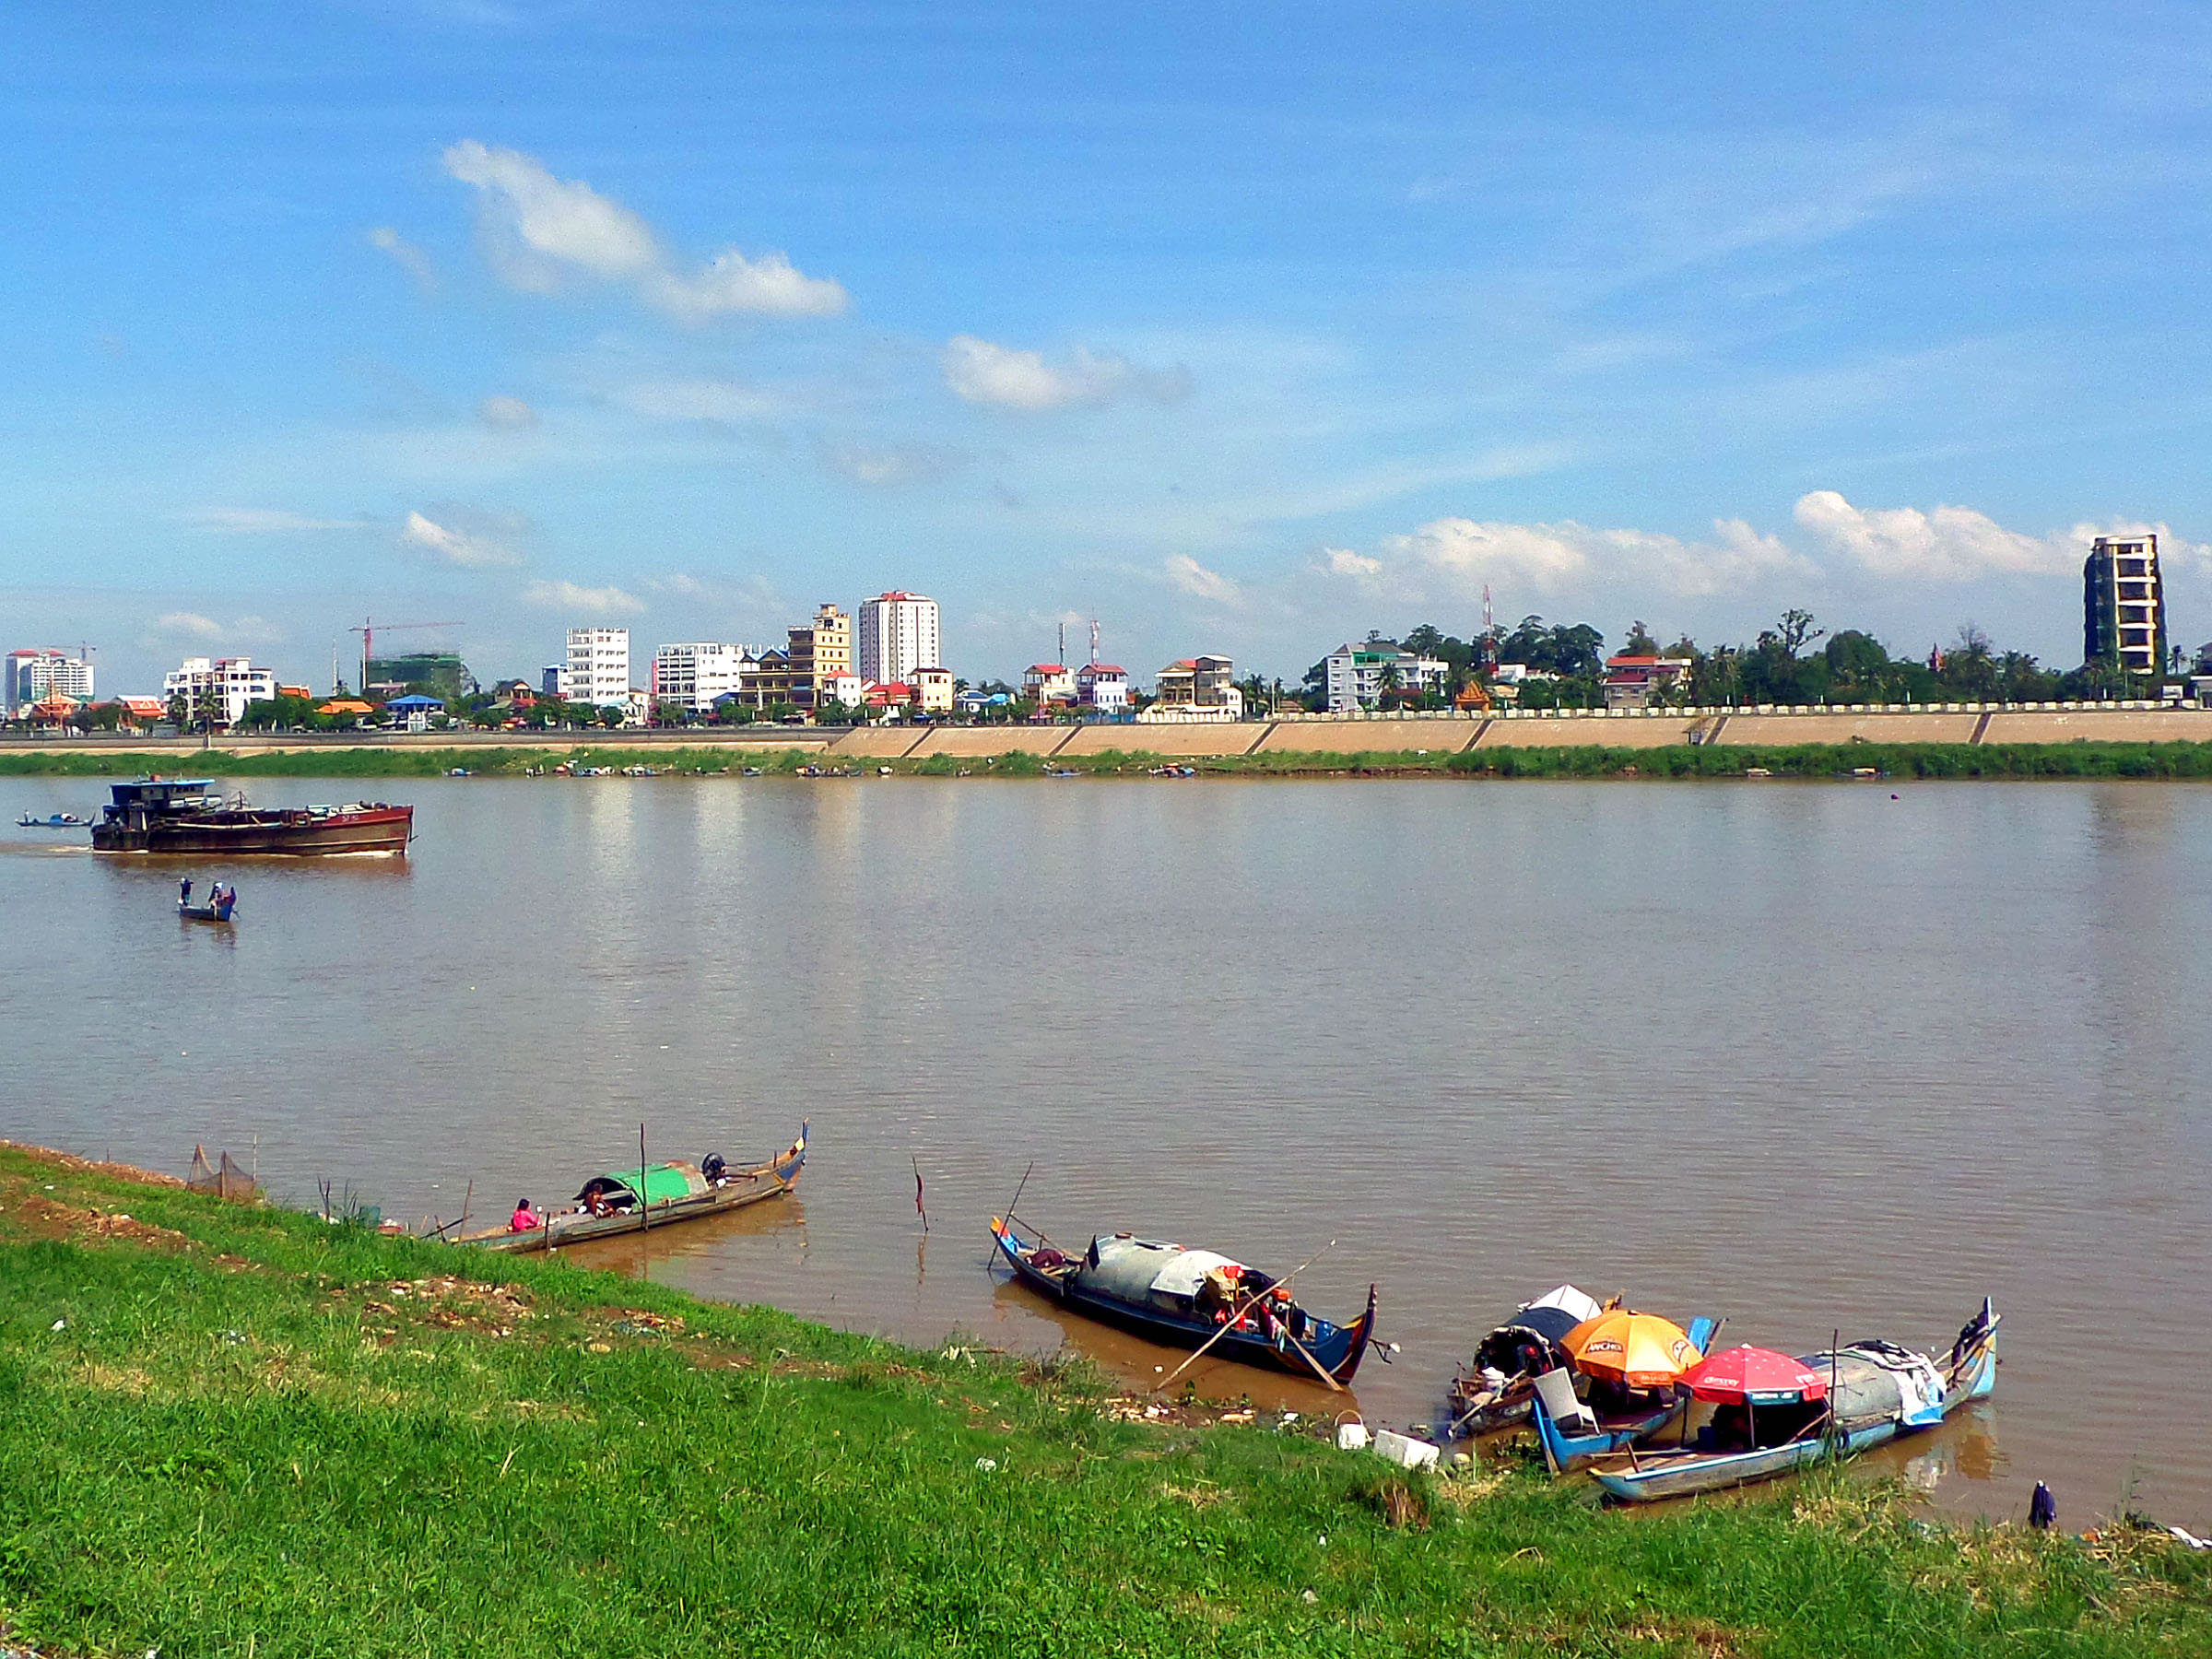 Tonle sap river and boats photo